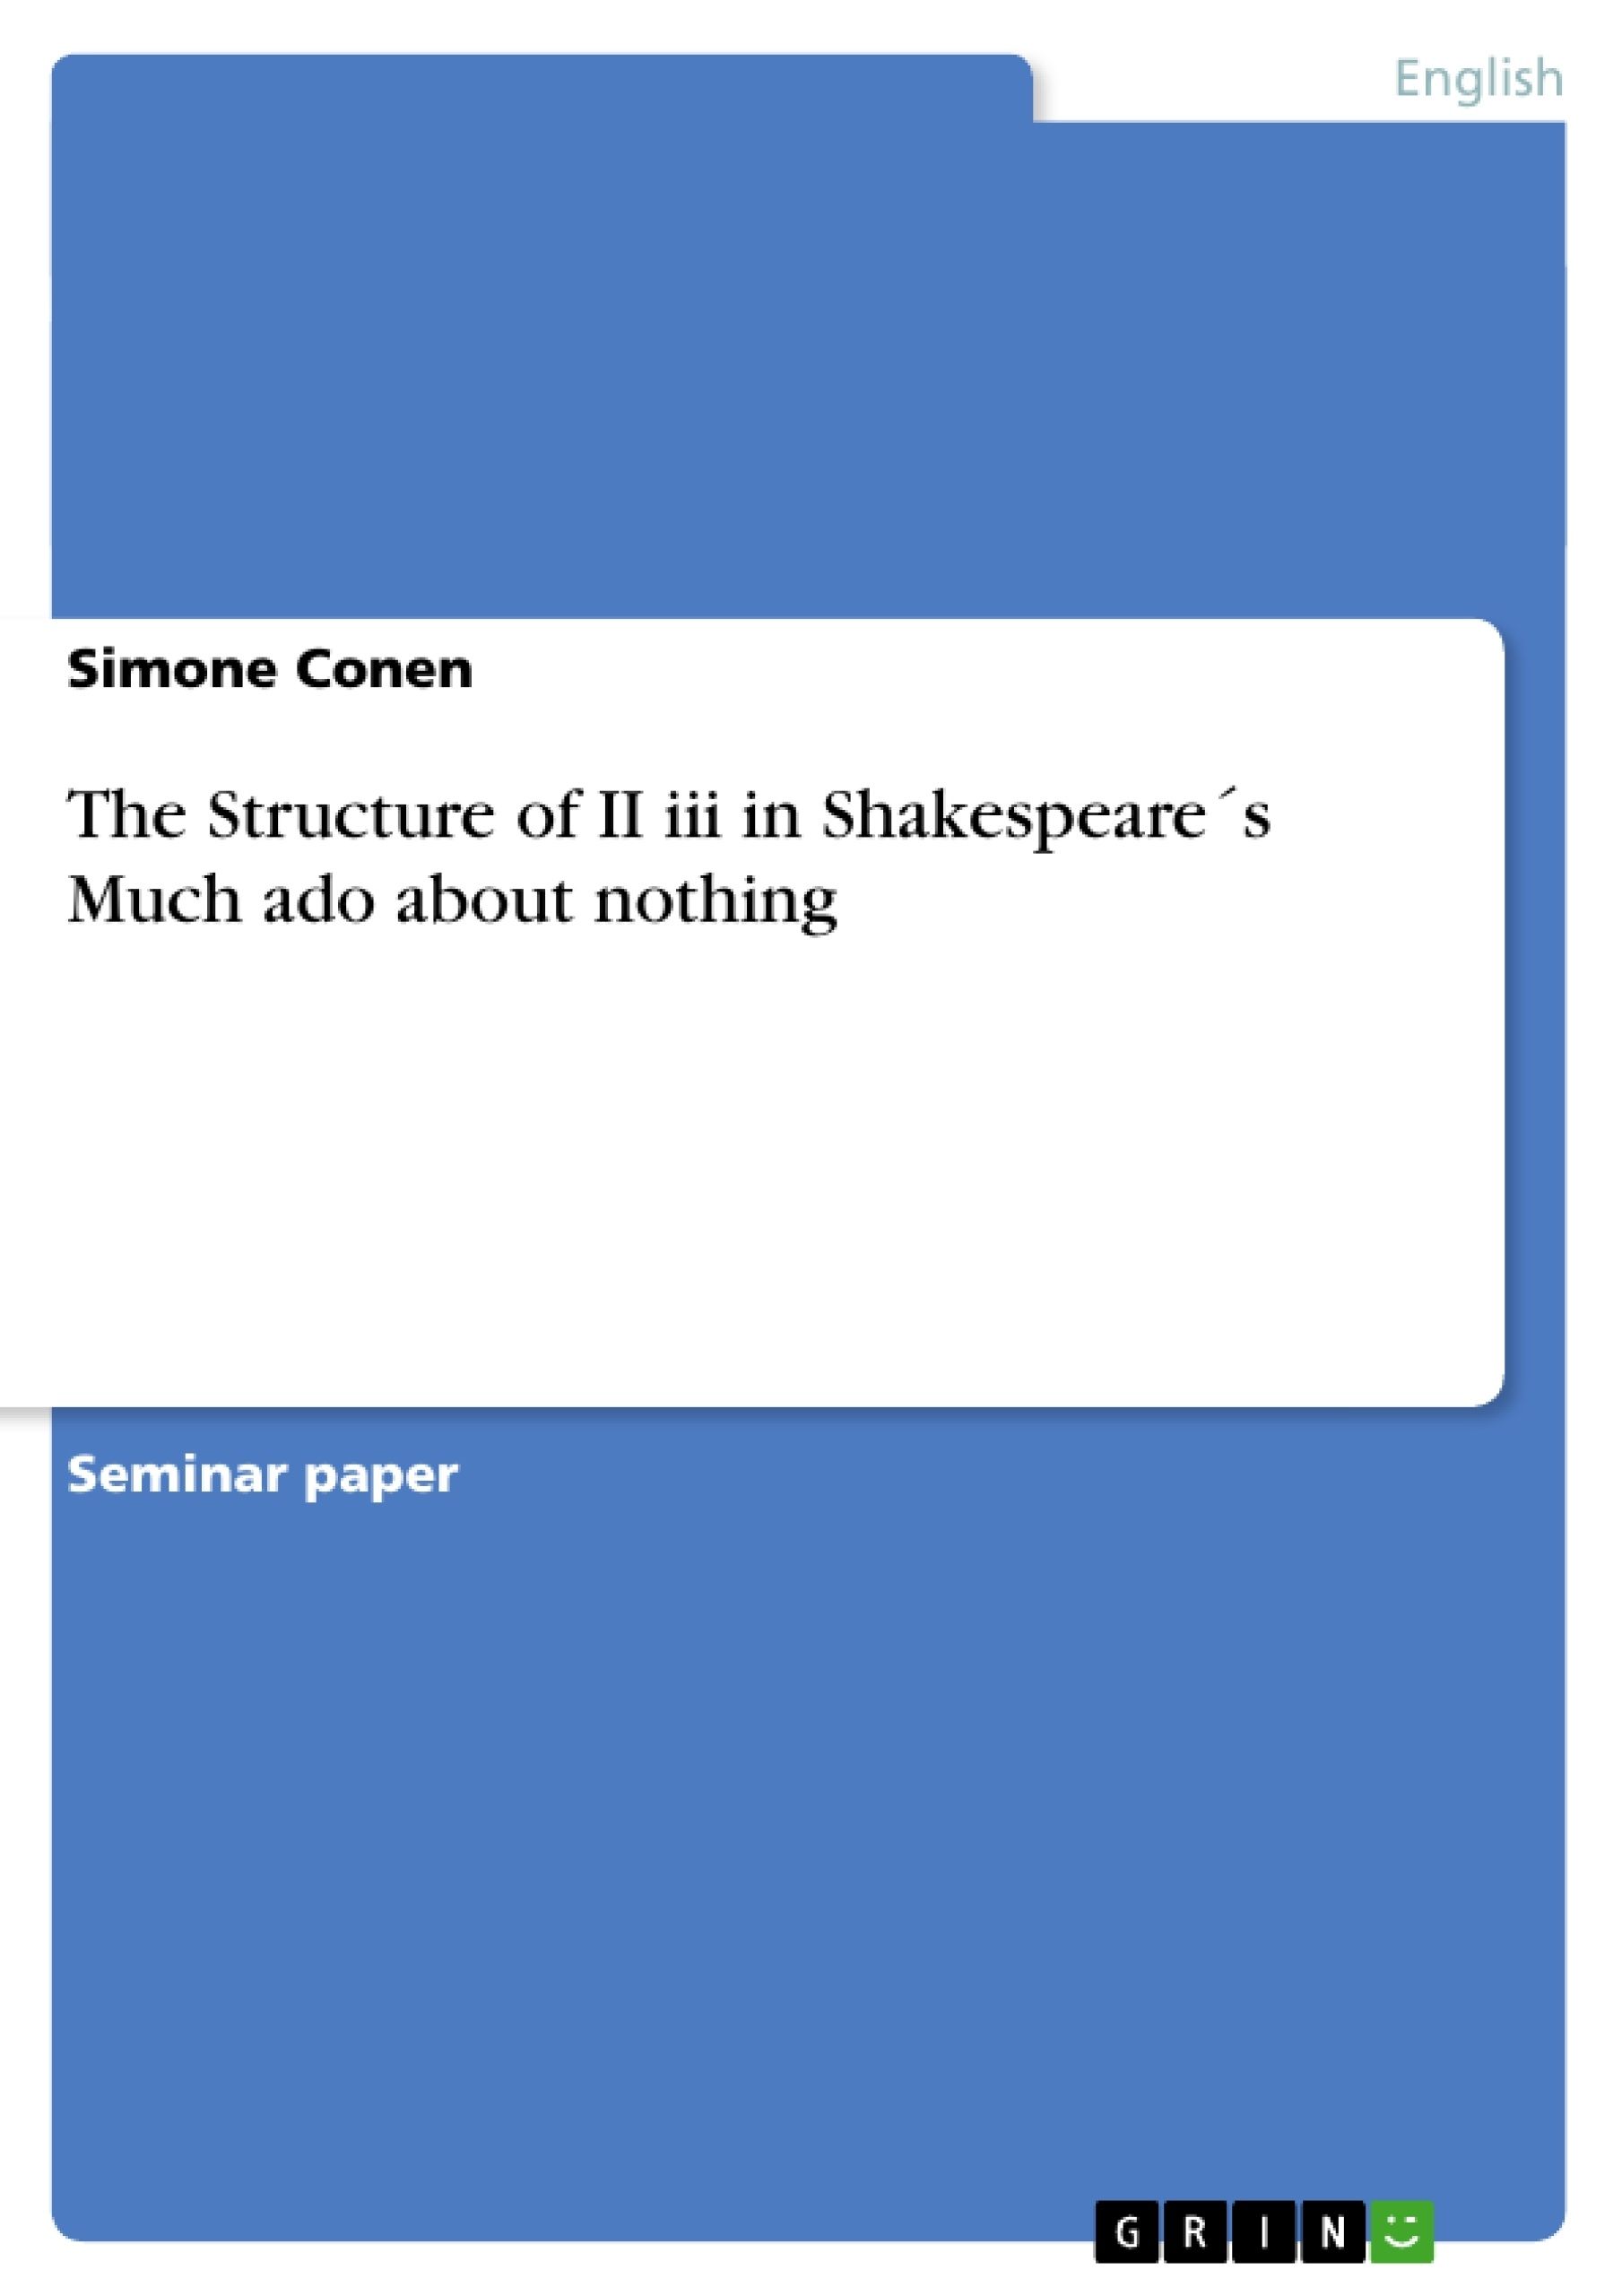 Title: The Structure of II iii in Shakespeare´s Much ado about nothing